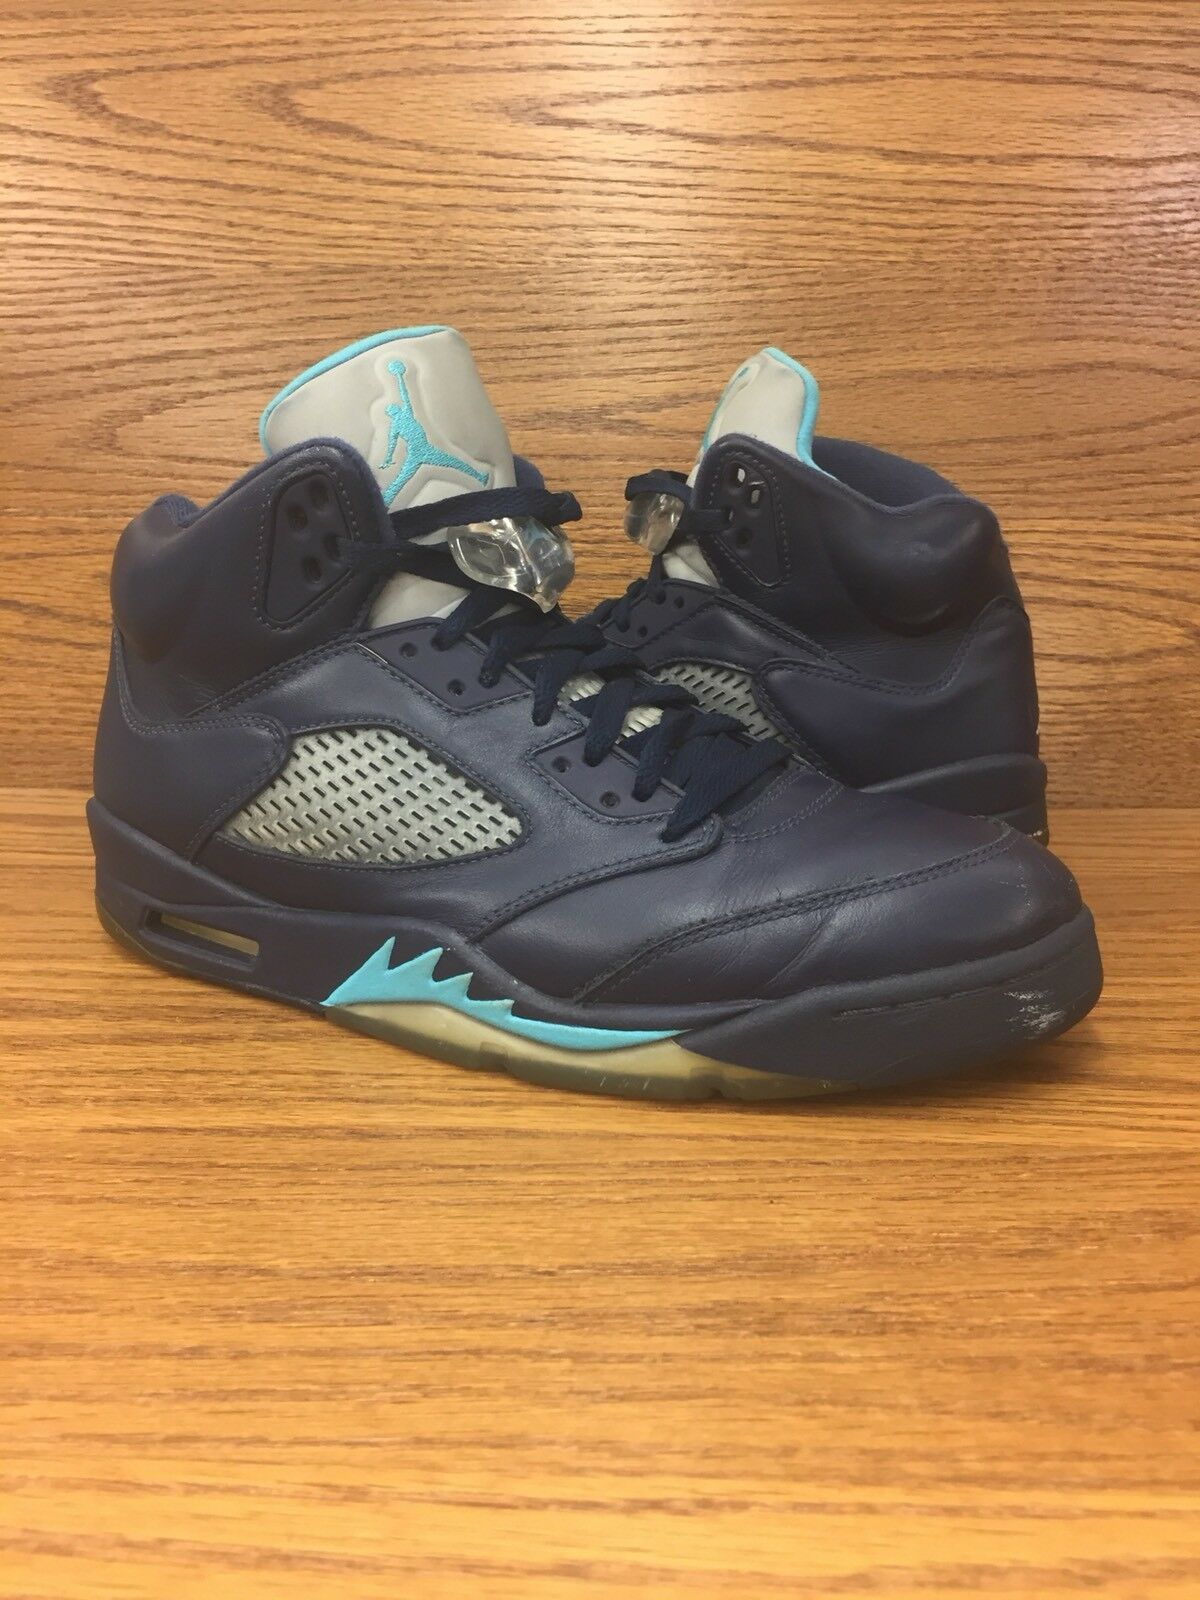 Air Jordan 5 Pre Grape Midnight Navy Mens Basketball Shoes Comfortable Special limited time